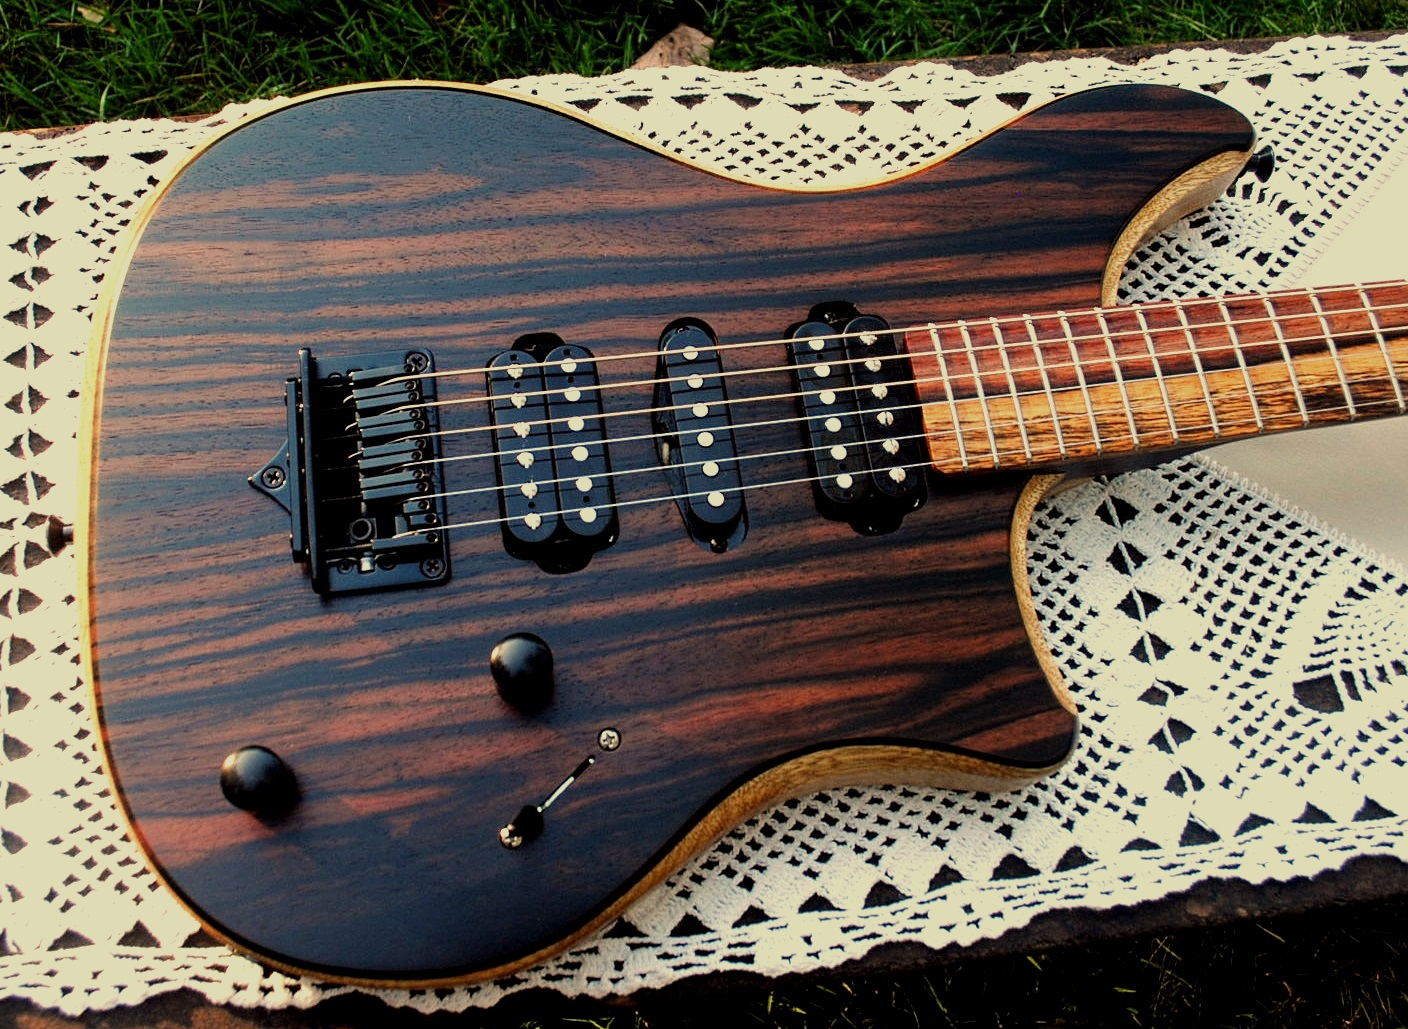 Did Macassar ebony guitar suggest you